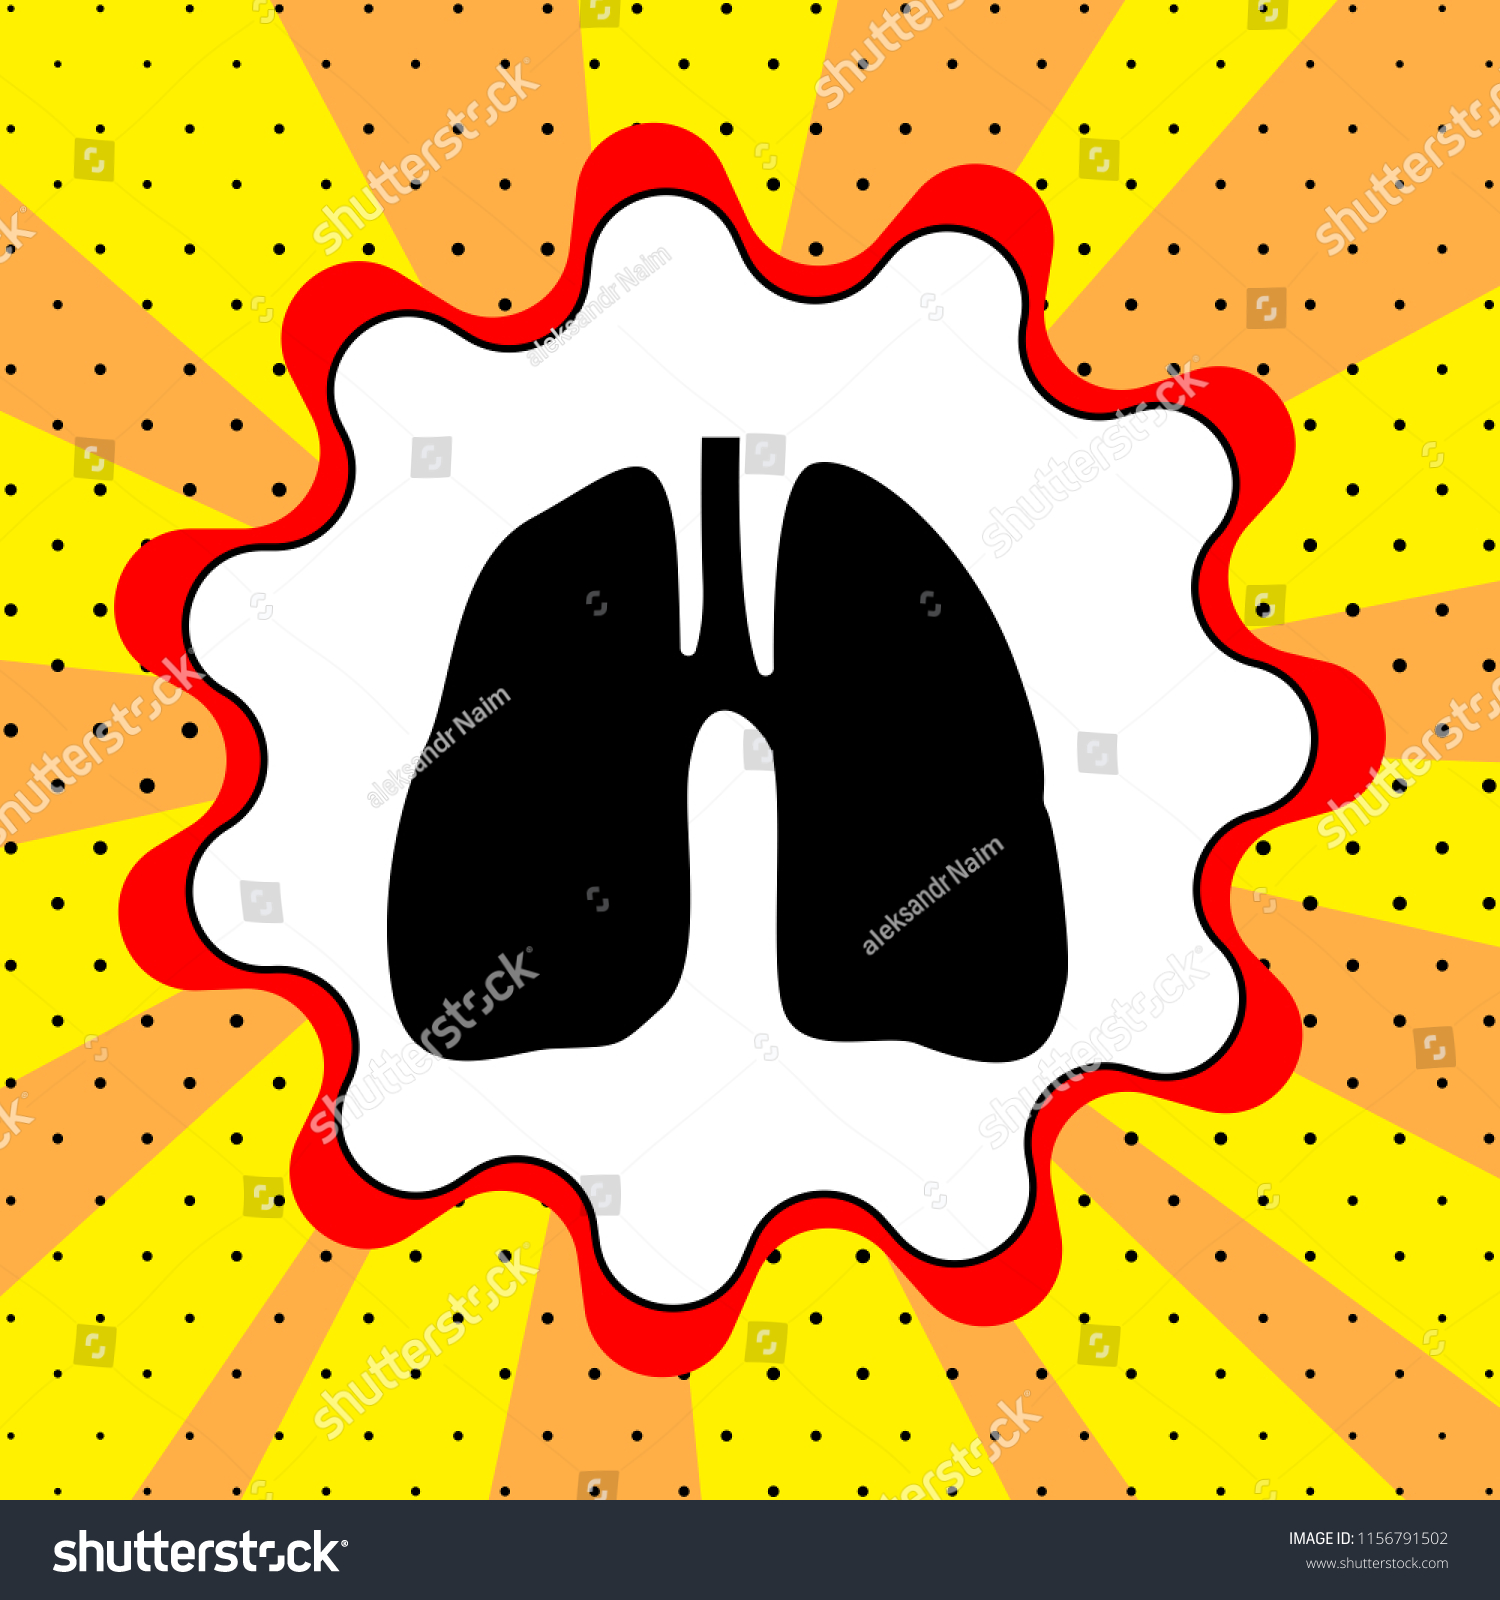 Human Anatomy Lungs Sign Black Icon Stock Vector 1156791502 ...